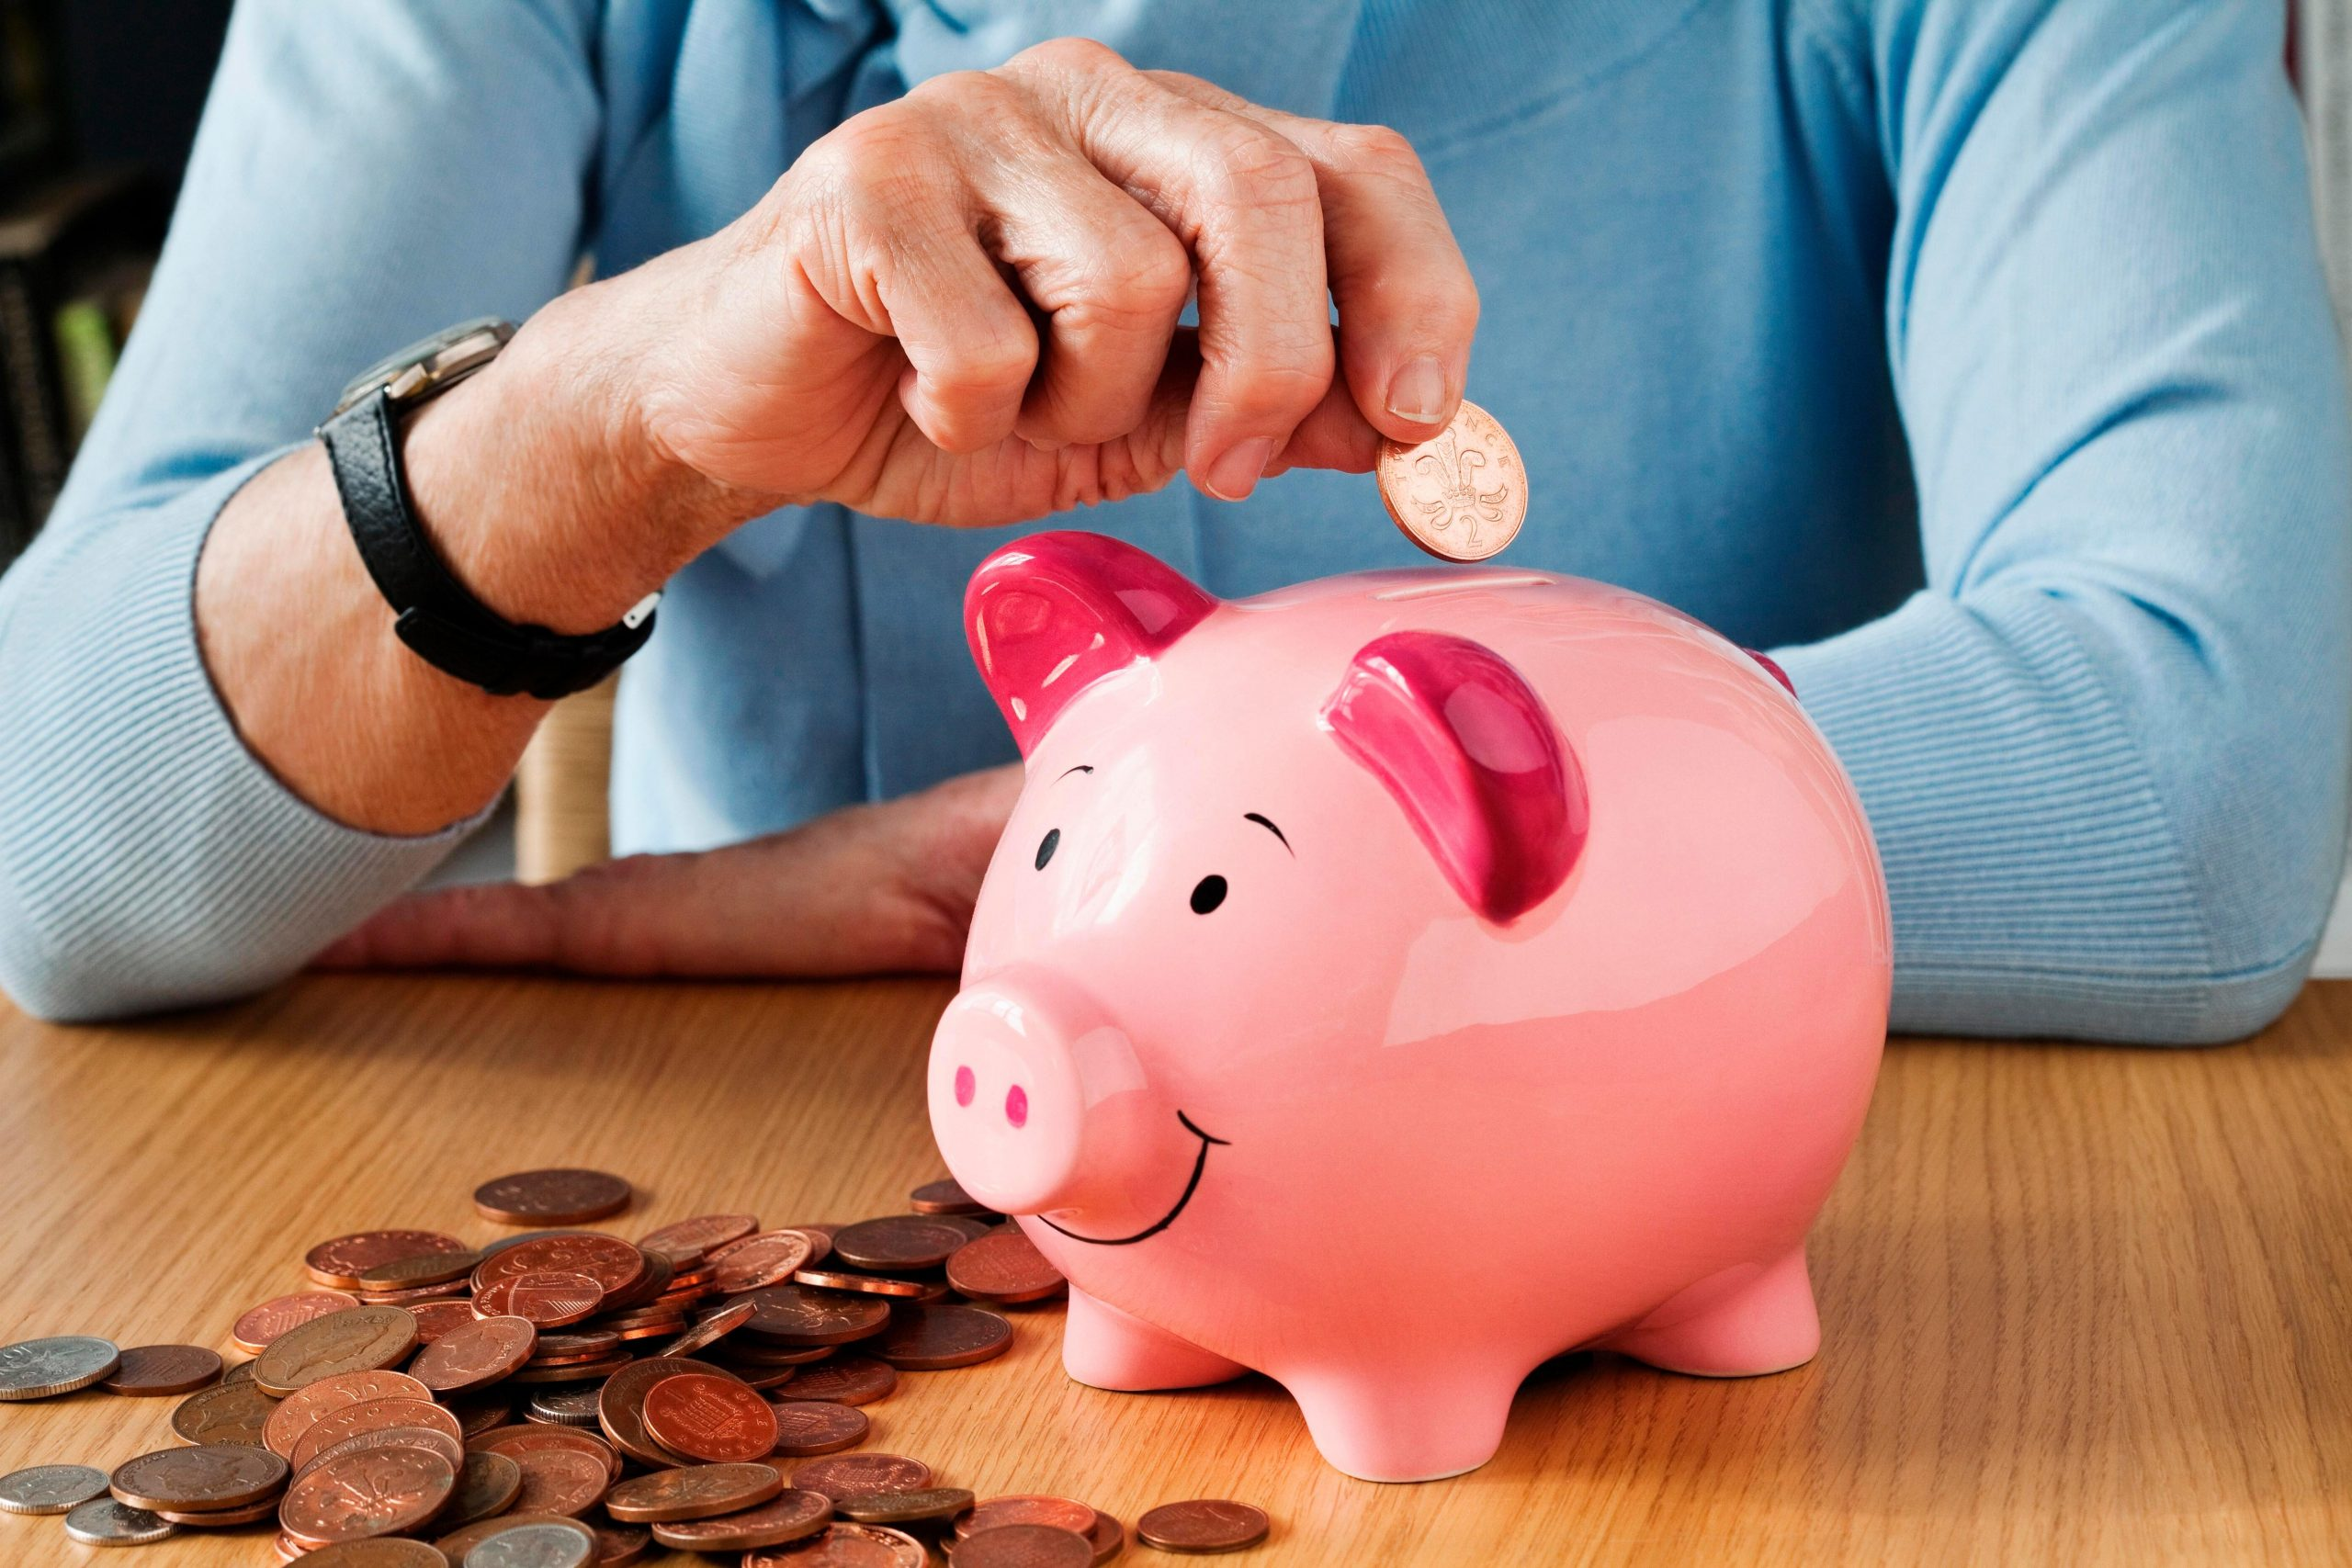 Title: How to Live on a Tight Budget? Saving Answers